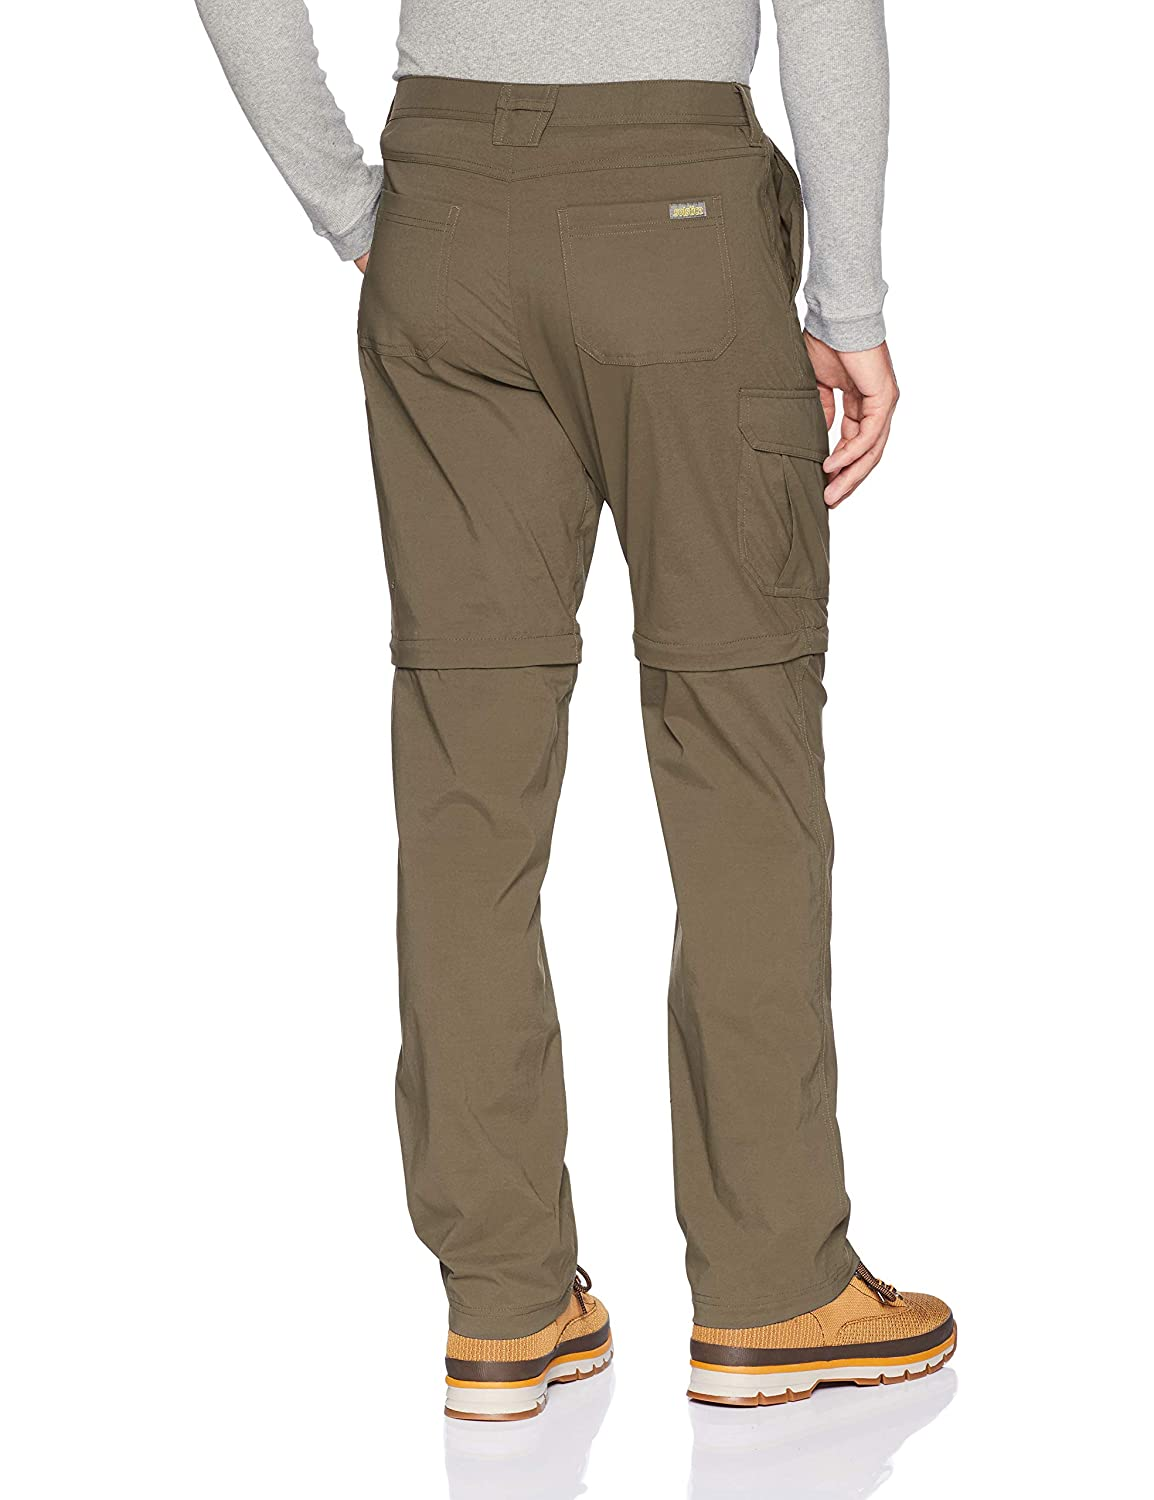 Solstice Apparel Stretch Convertible Pant